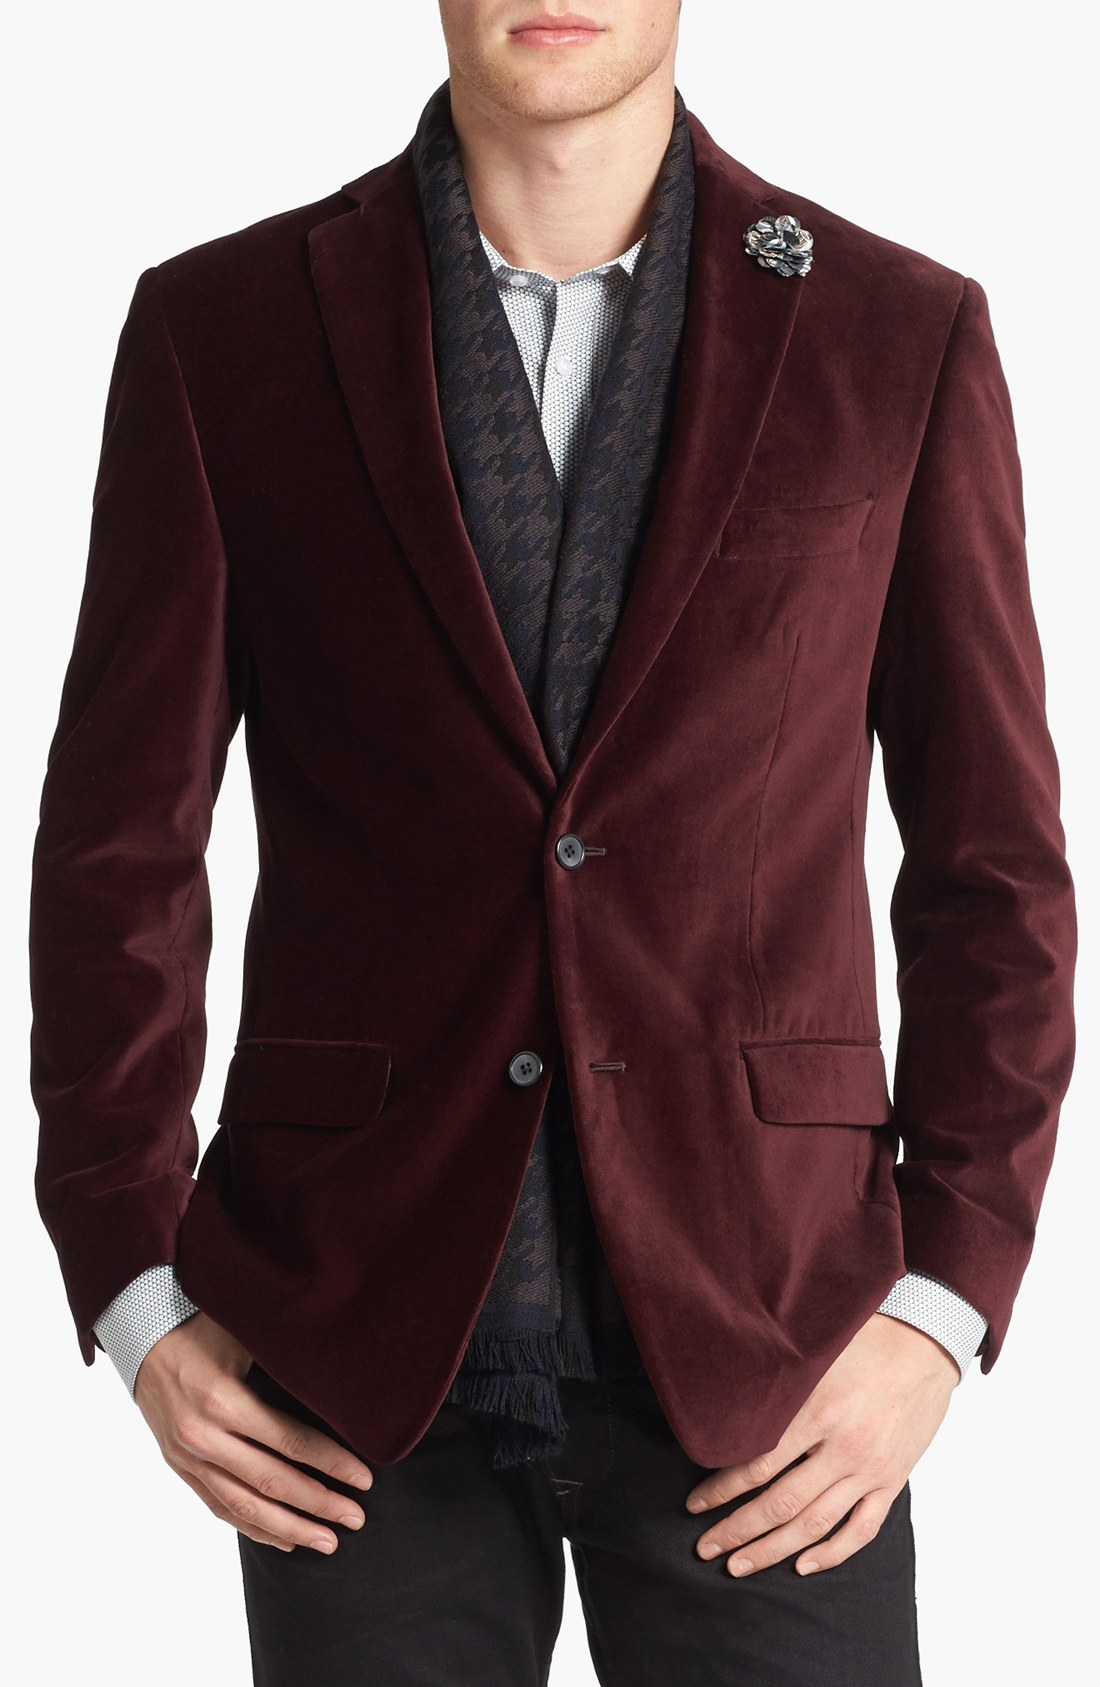 michael kors trim fit velvet blazer in purple for men burgundy lyst. Black Bedroom Furniture Sets. Home Design Ideas